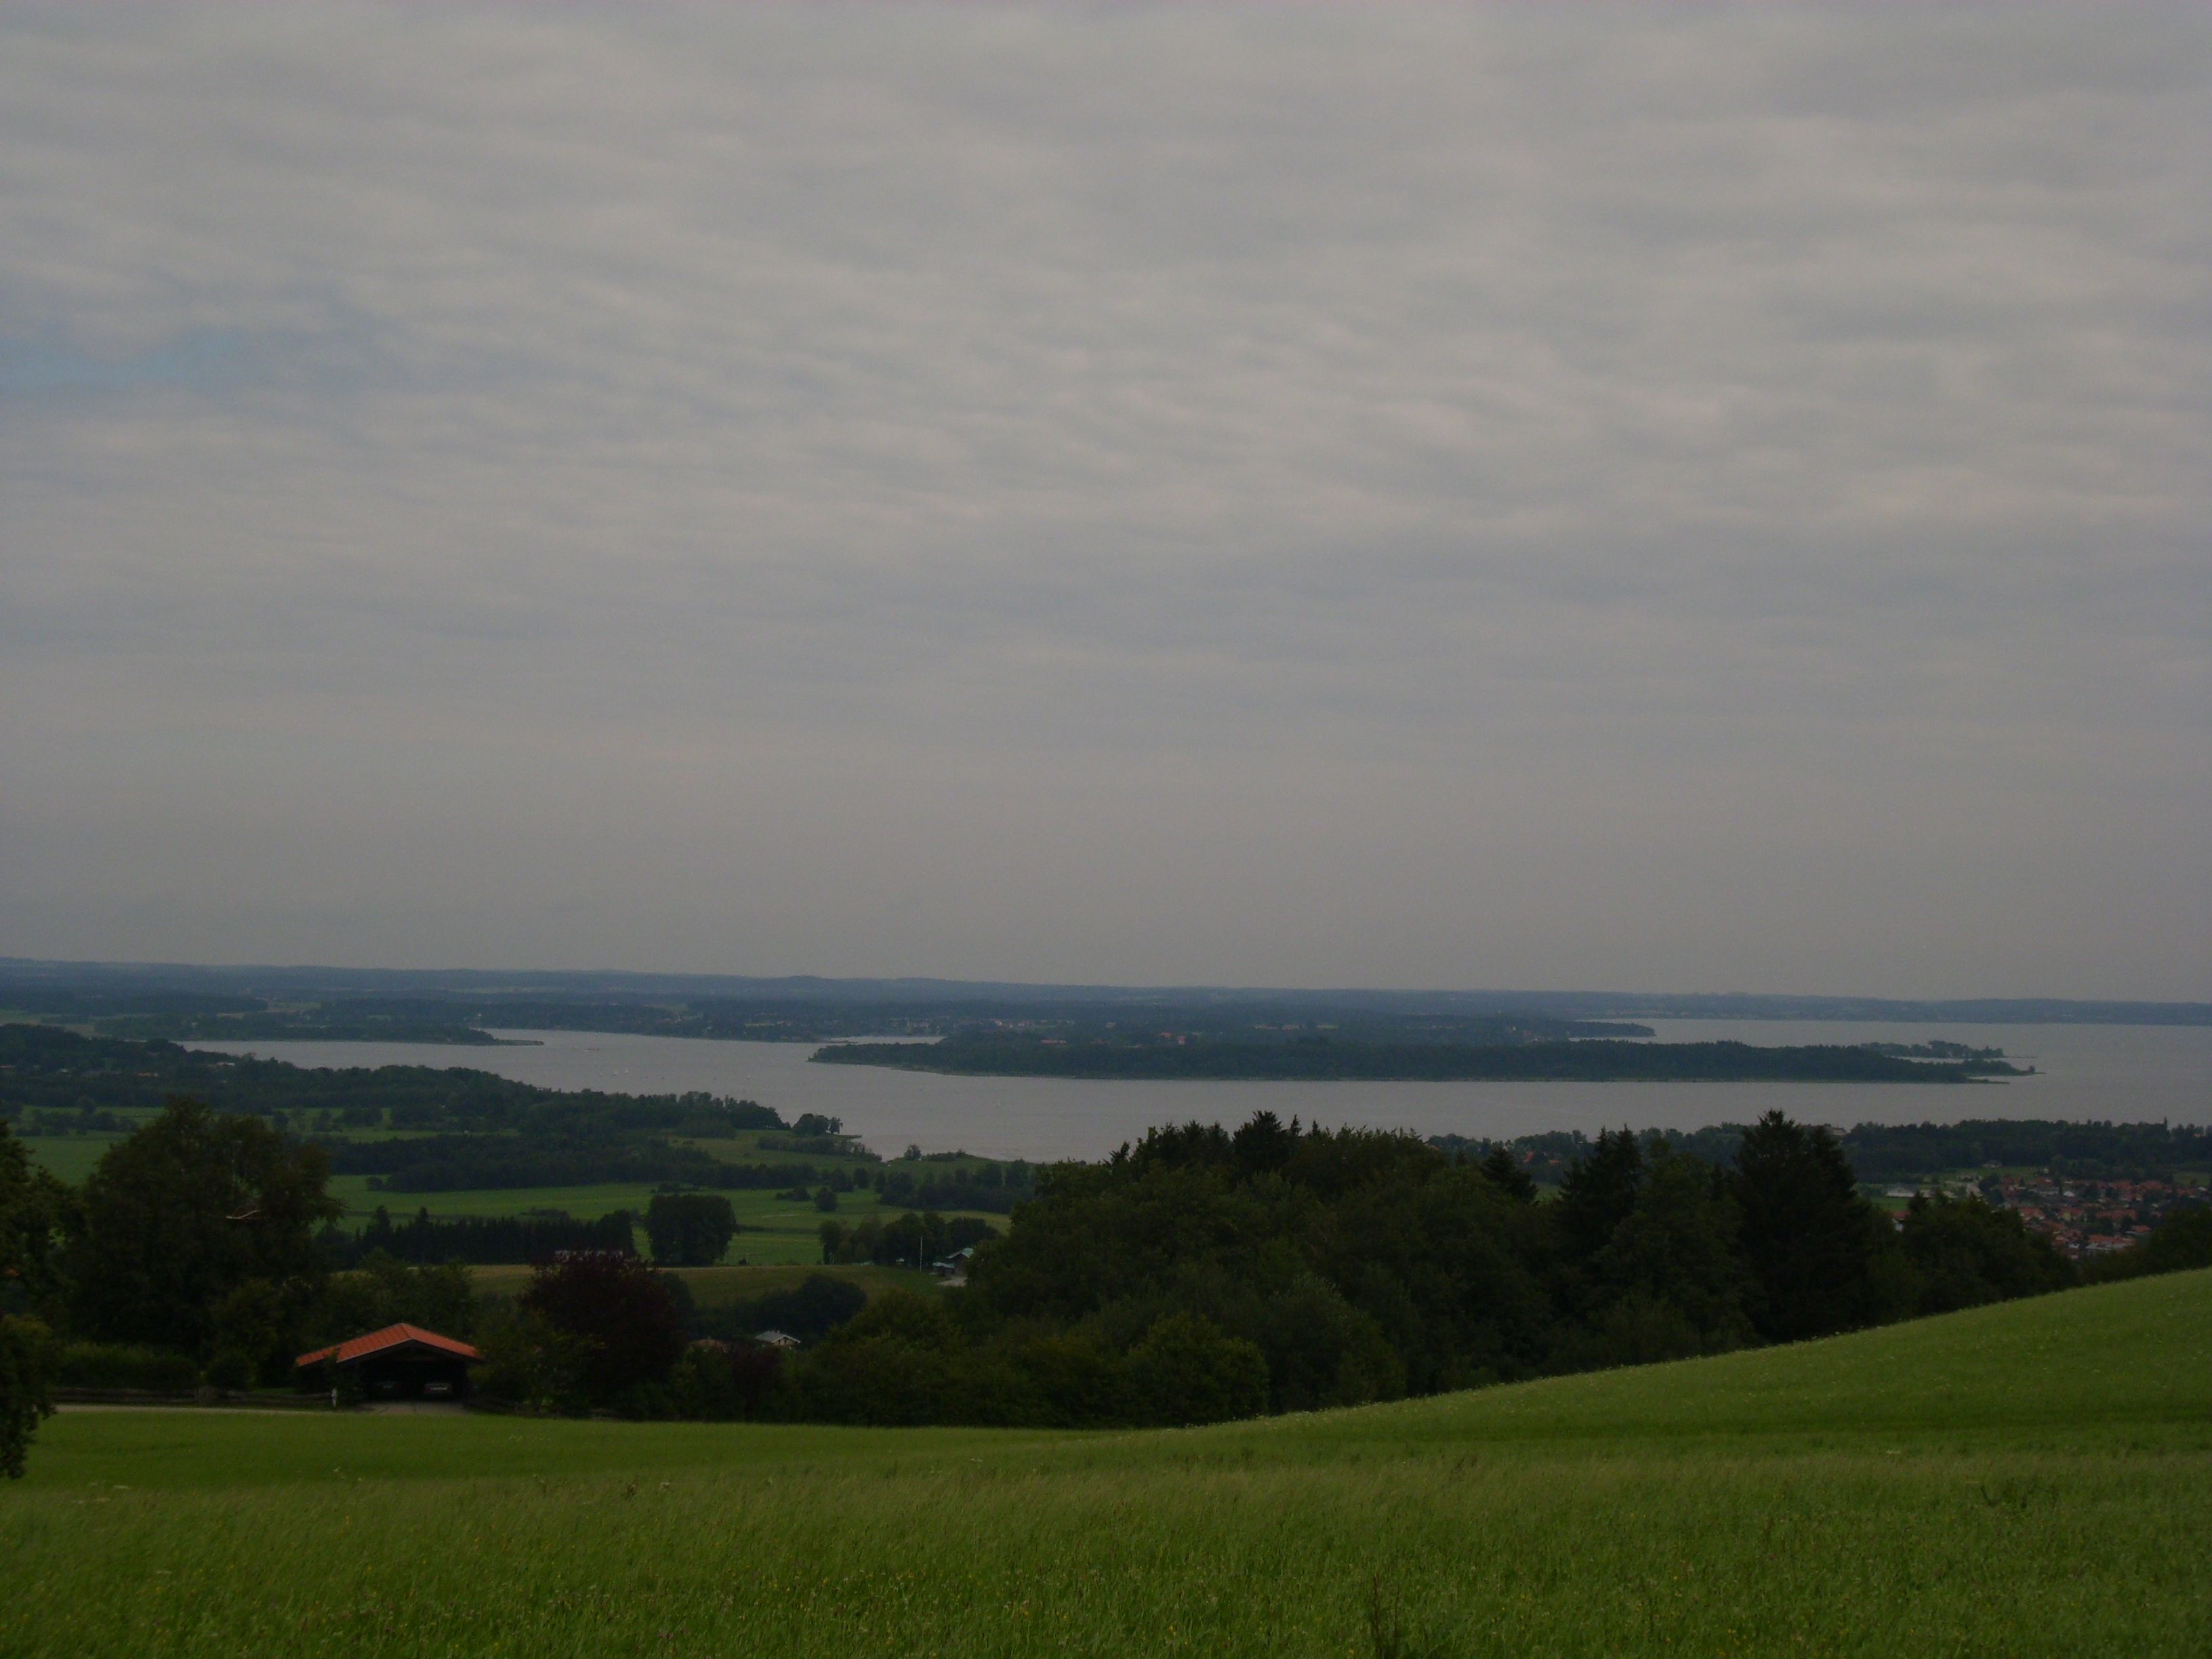 Chiemsee, The  Biggest  And  Beautiful  Lake  In  Bavaria, Germany